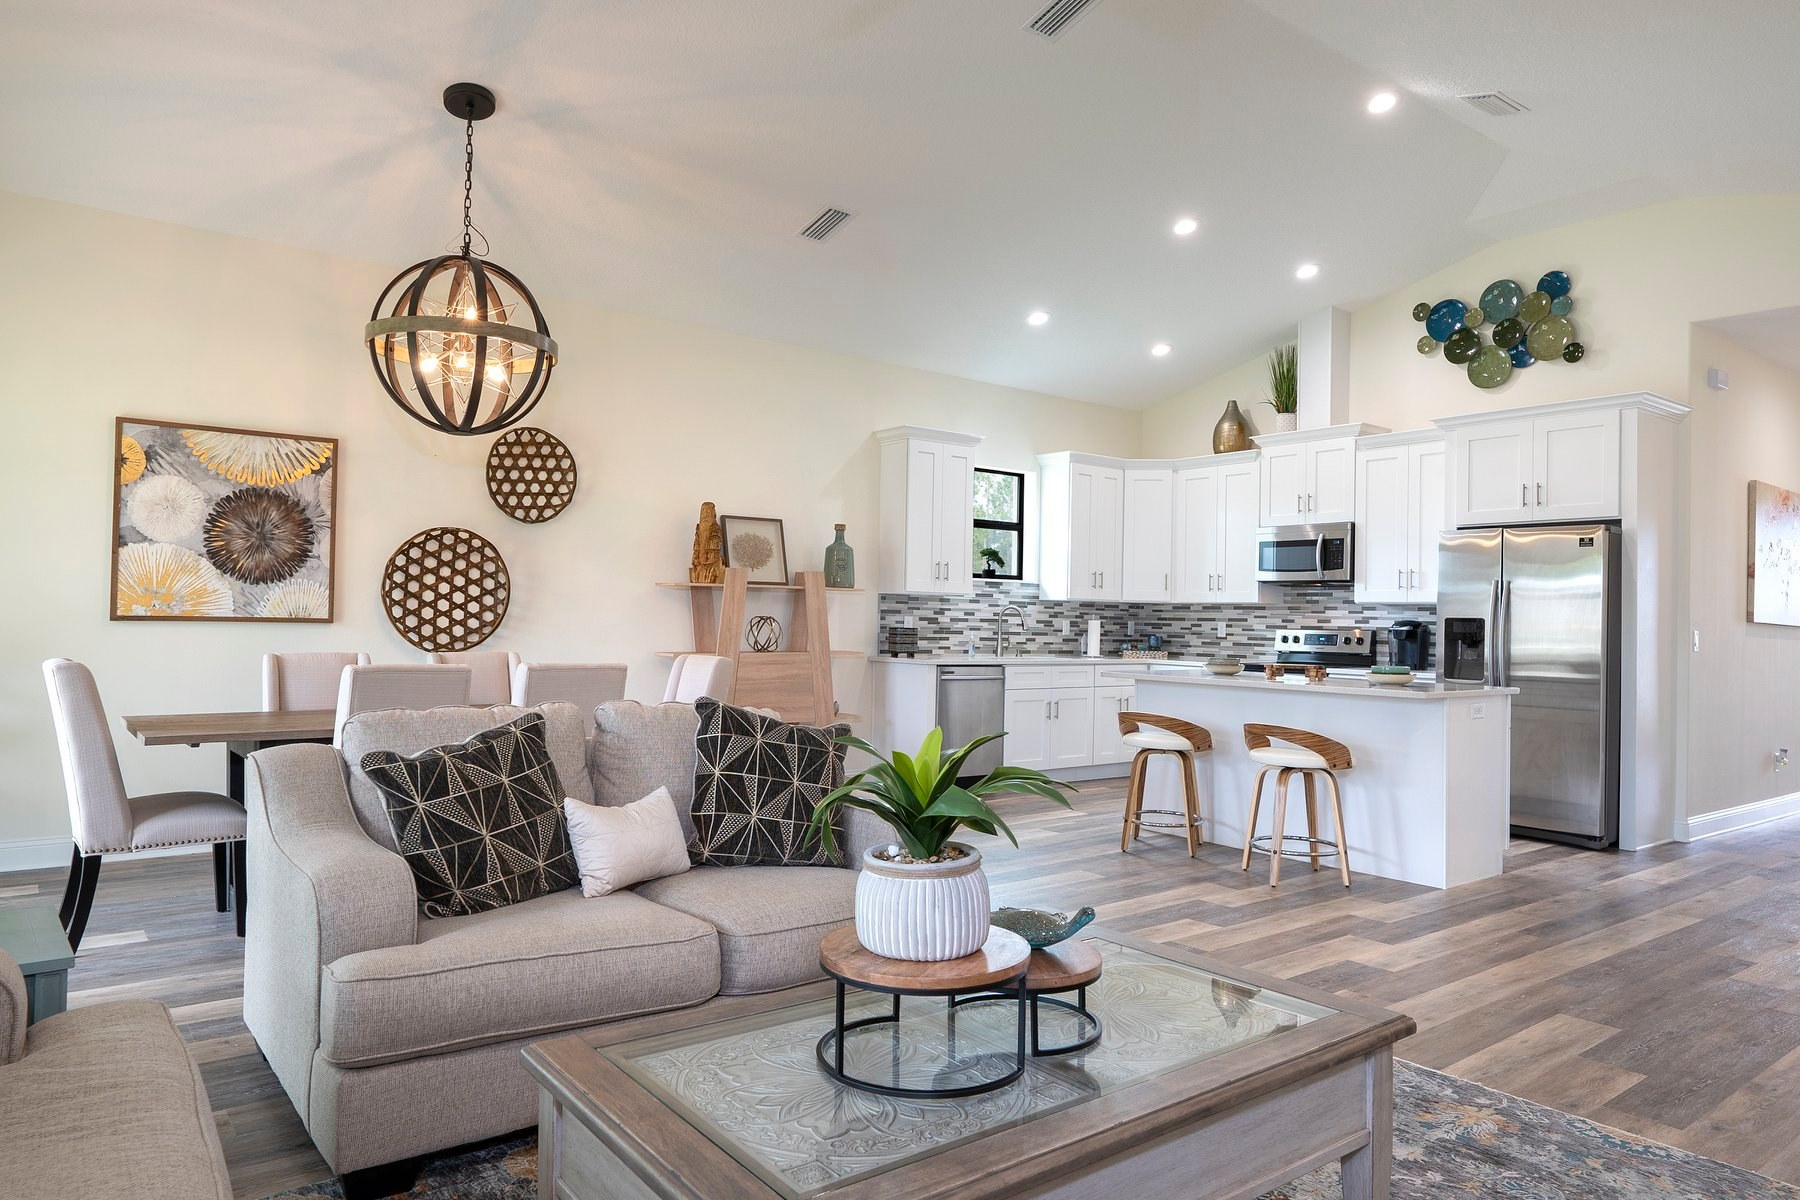 american village homes for sale in palm coast